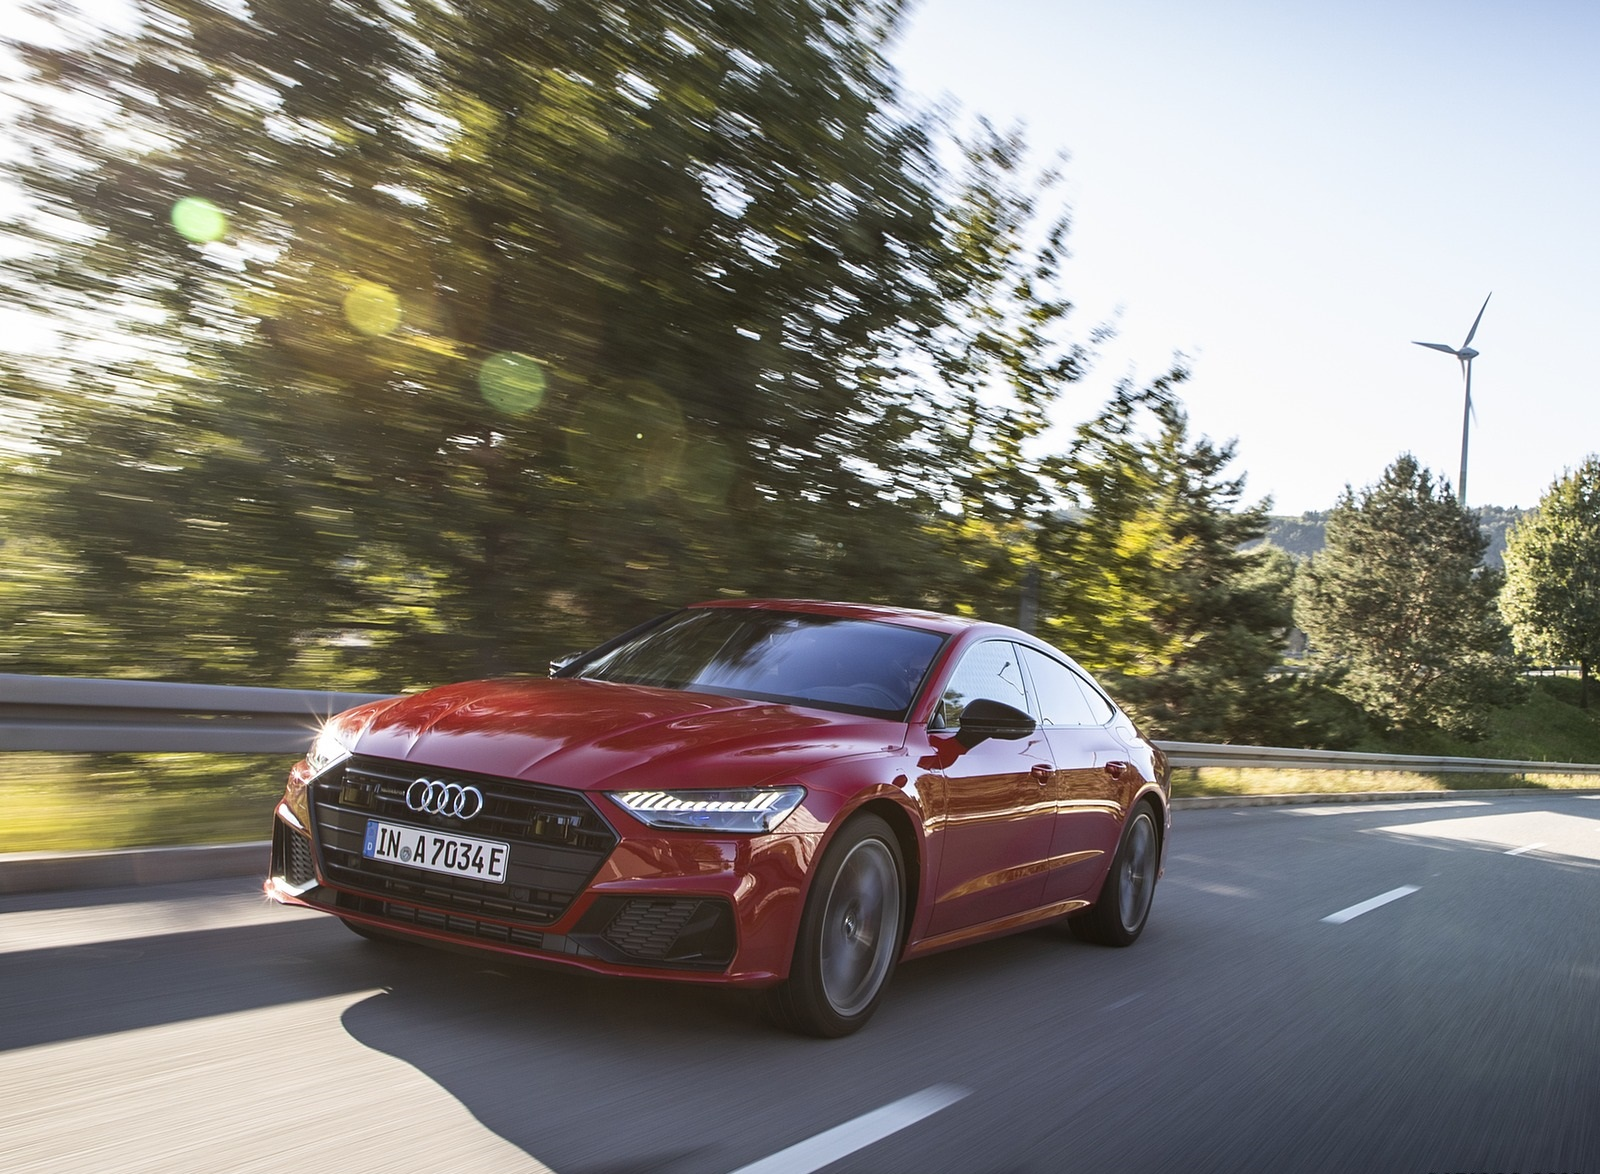 2020 Audi A7 Sportback 55 TFSI e quattro Plug-In Hybrid (Color: Tango Red) Front Three-Quarter Wallpapers (10)